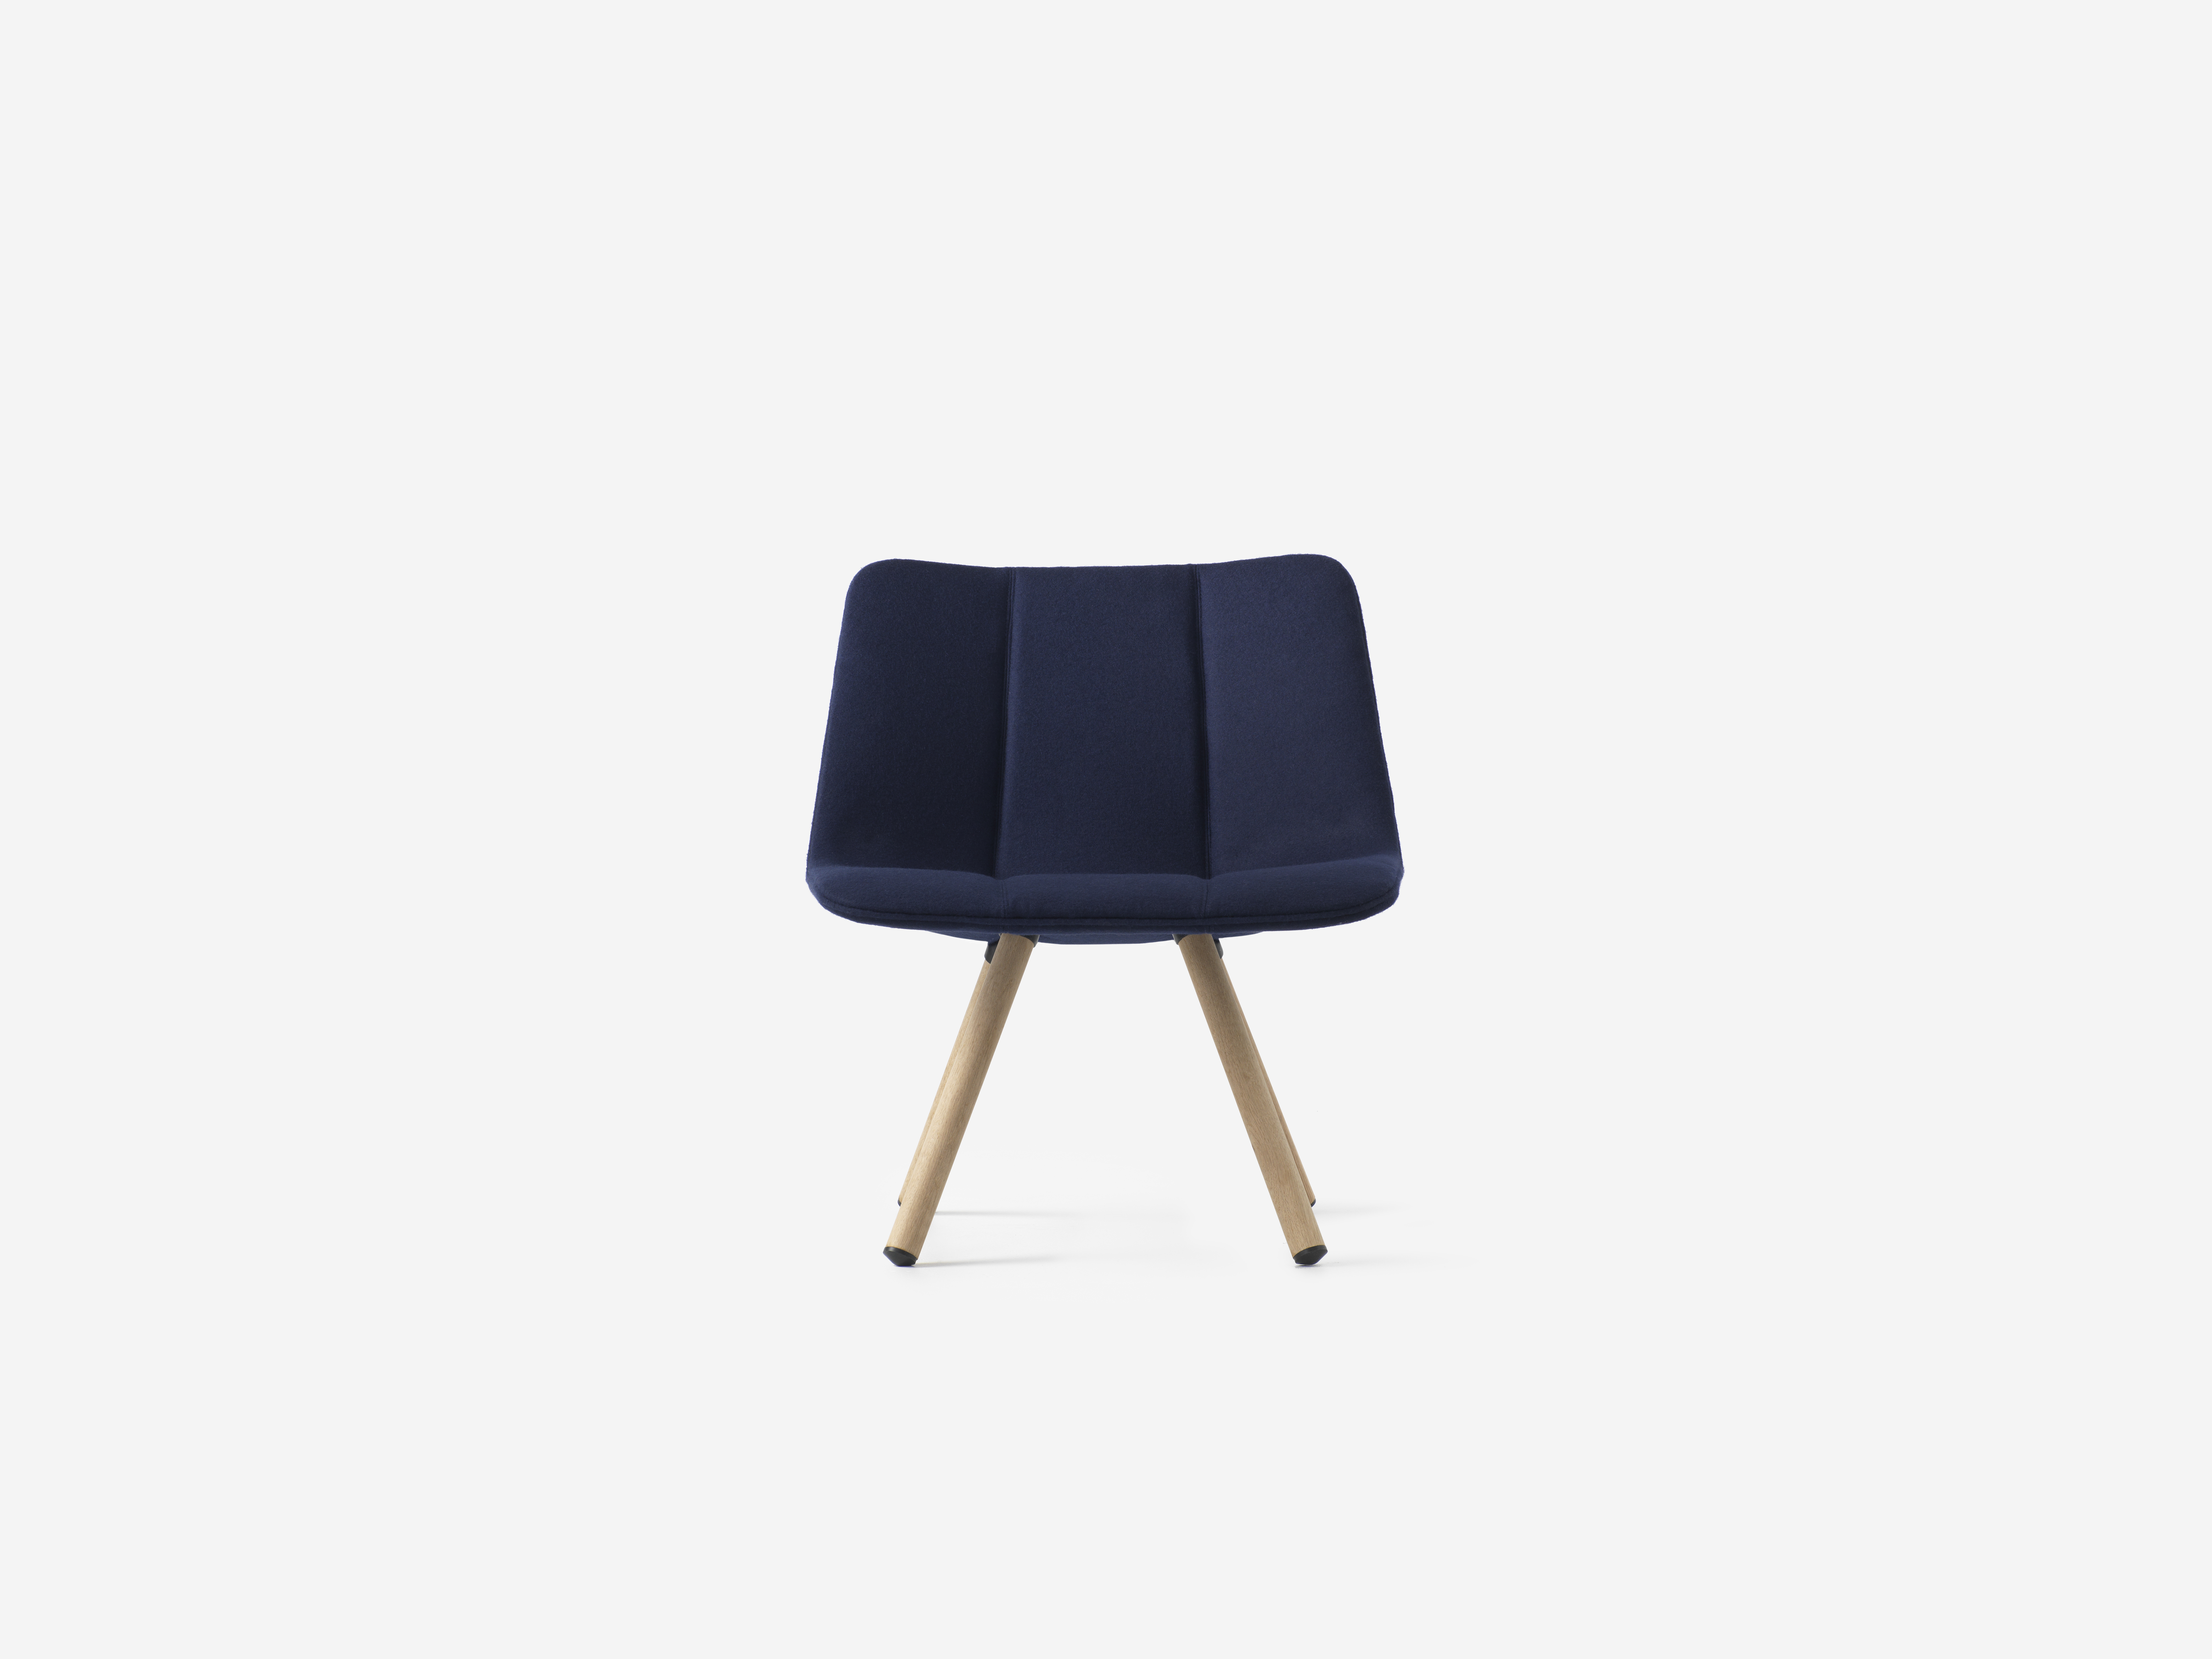 product image for Volley chair – 4 leg